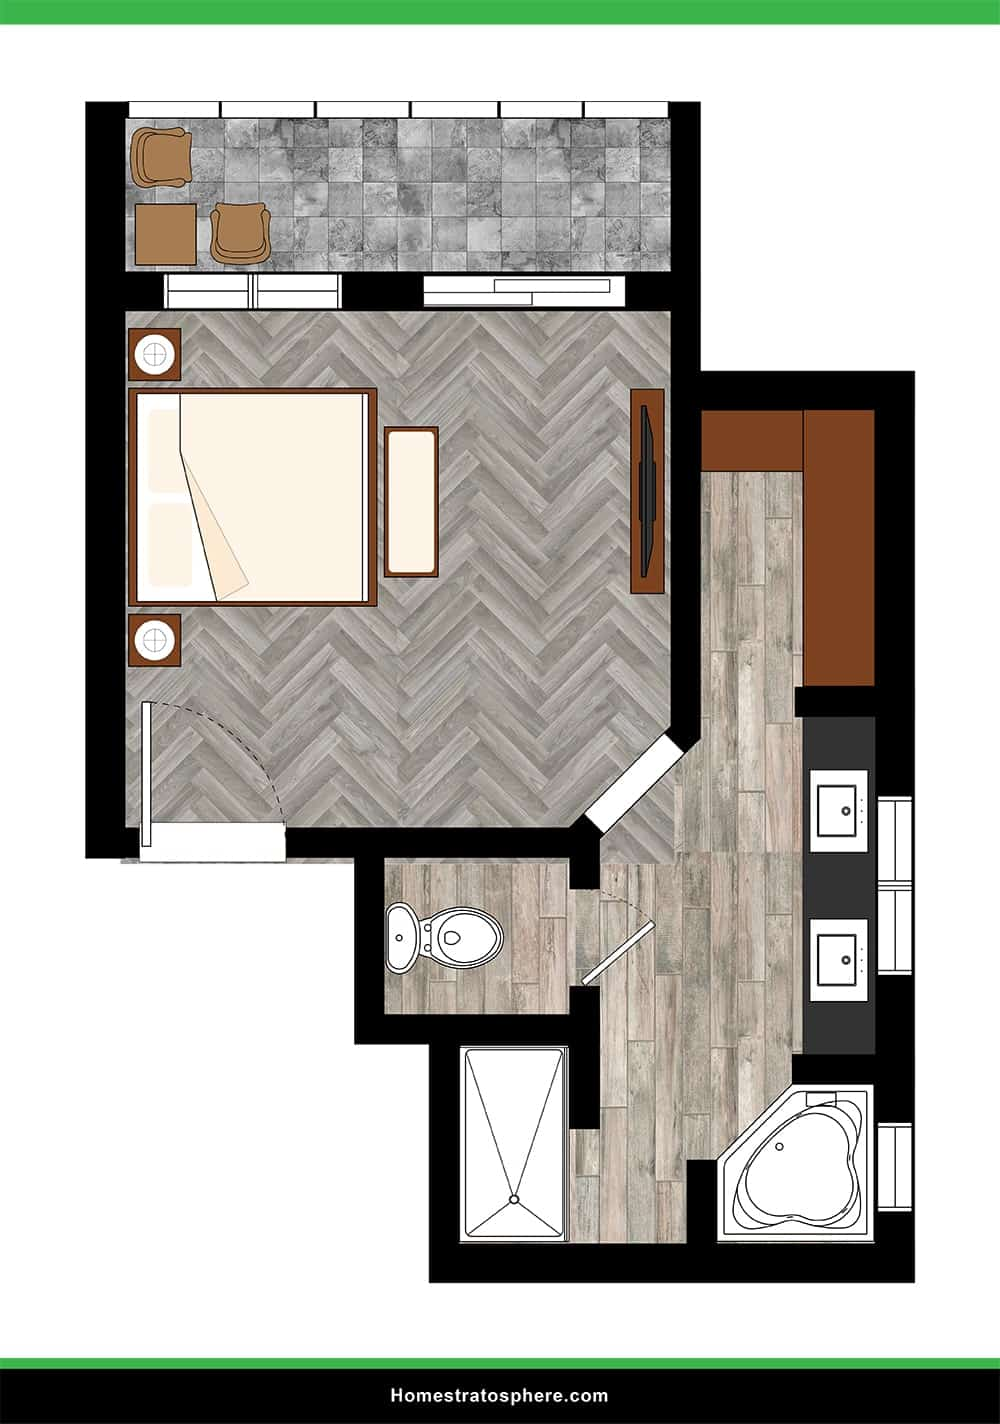 Large Primary Bedroom That Is Spacious, Compartmentalized, and Modern